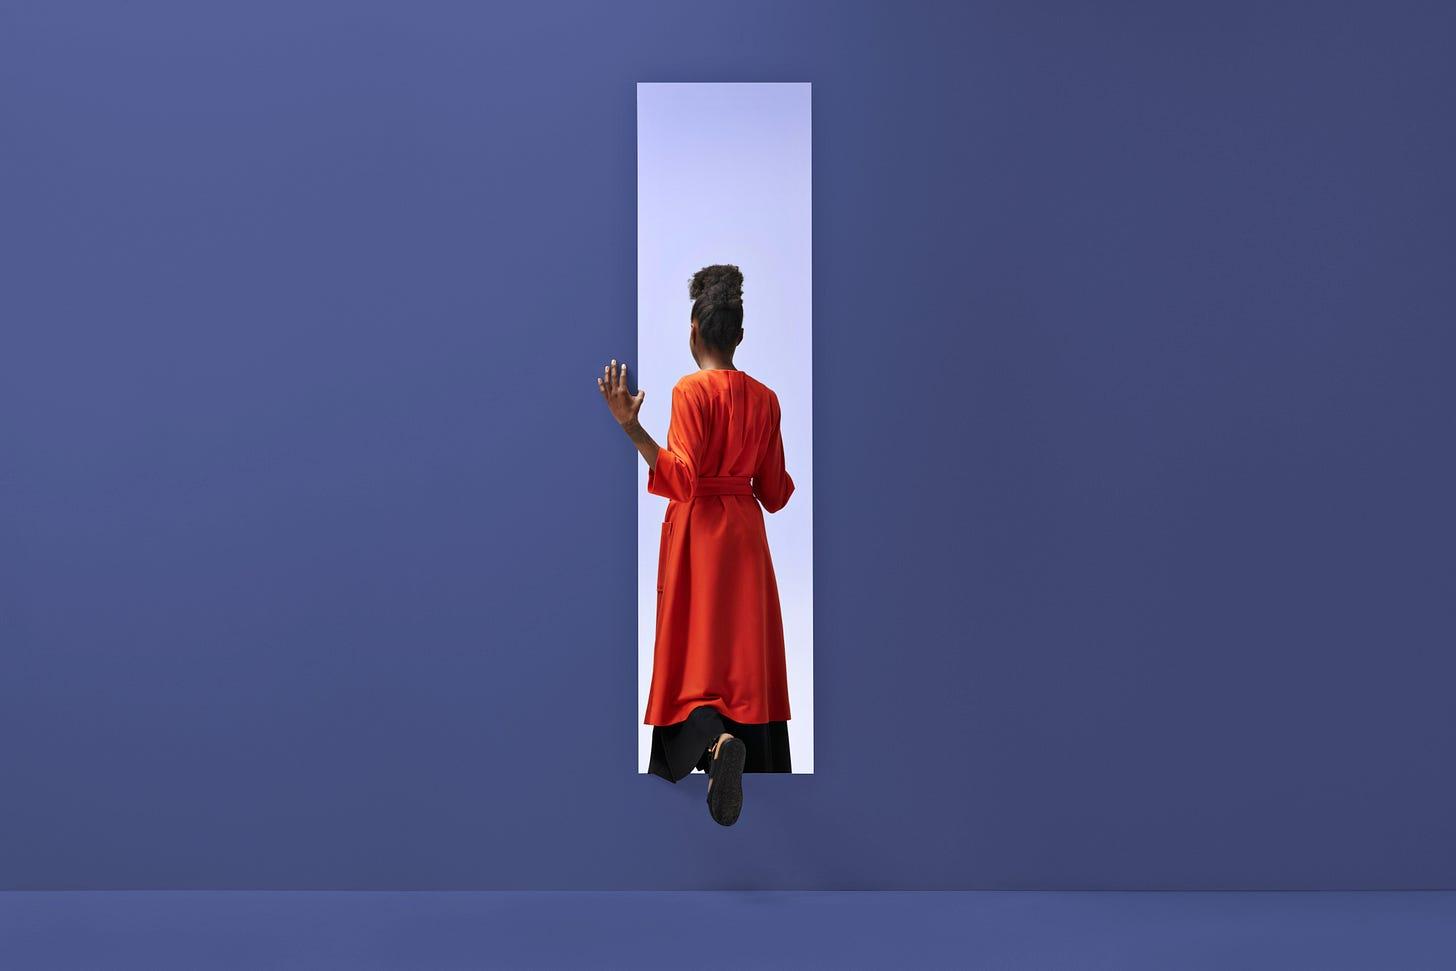 Image of a Black woman standing with her back to us, in a dreamlike purple doorway, poised as though she might go through